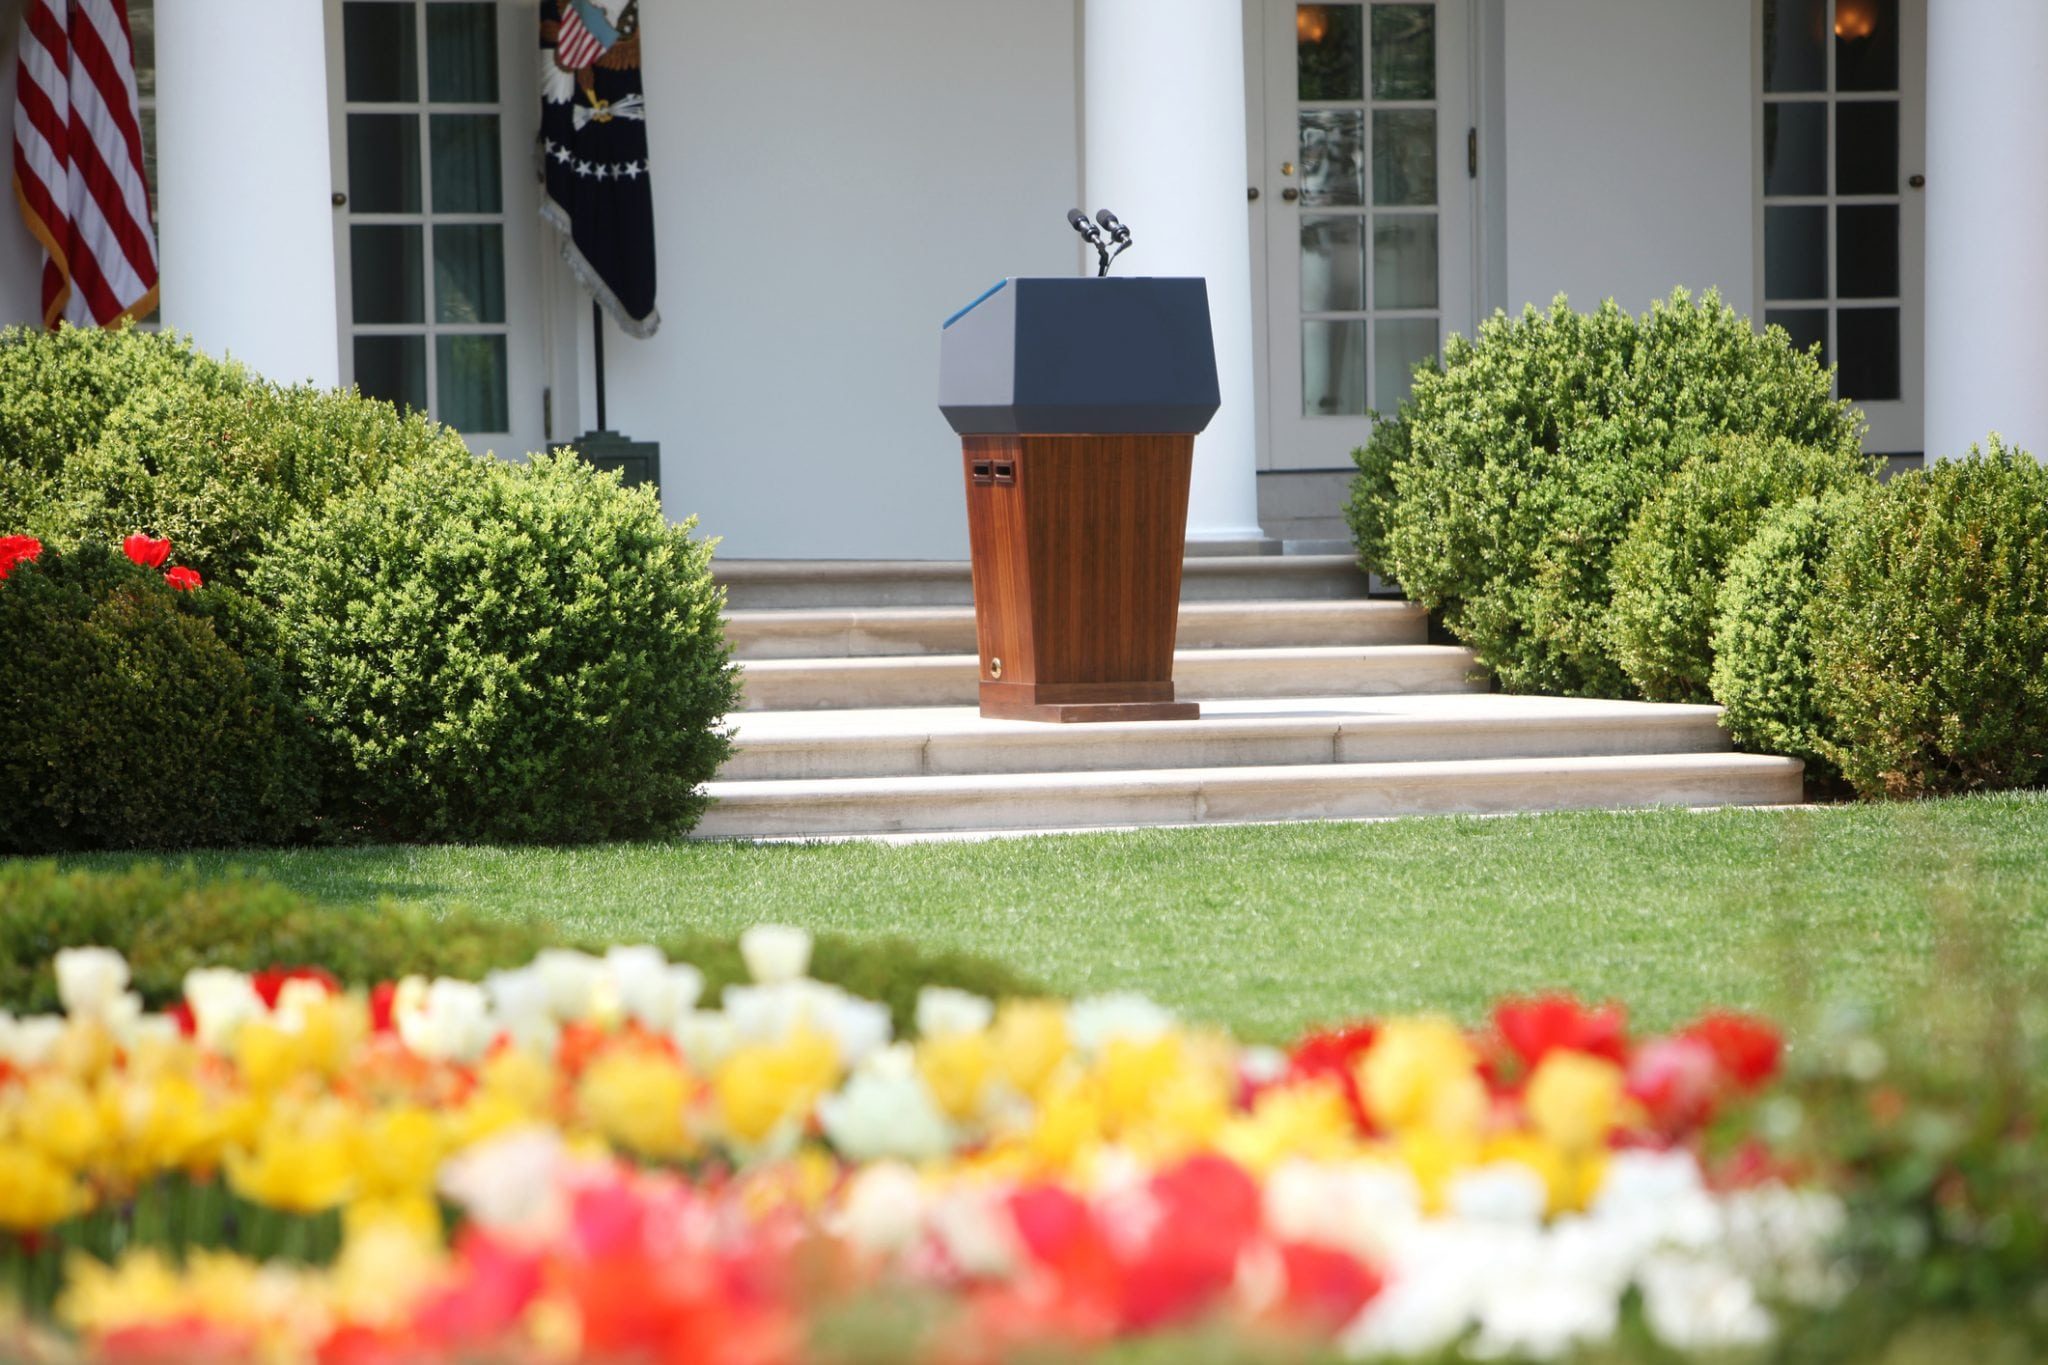 A Landscape Of The White House With Flowers And Bushes National